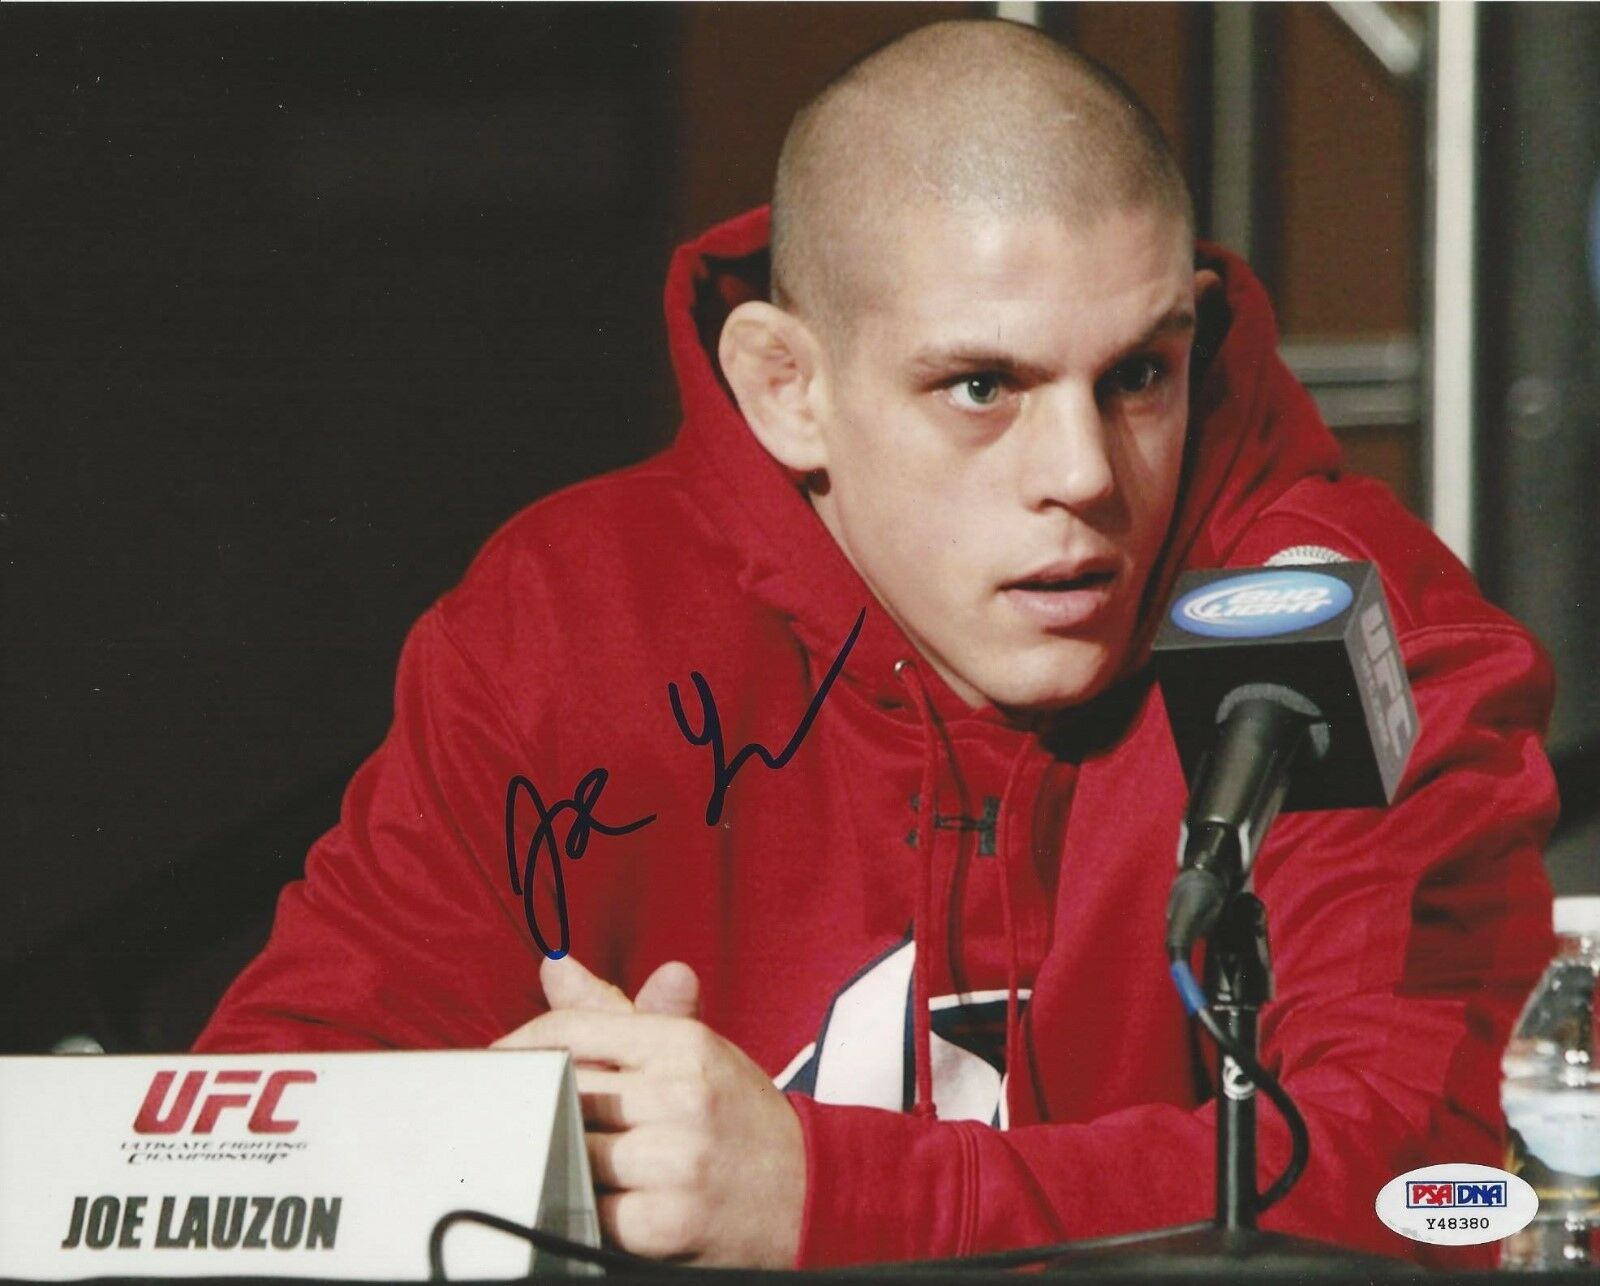 Joe Lauzon UFC Fighter signed 8x10 photo PSA/DNA # Y48380